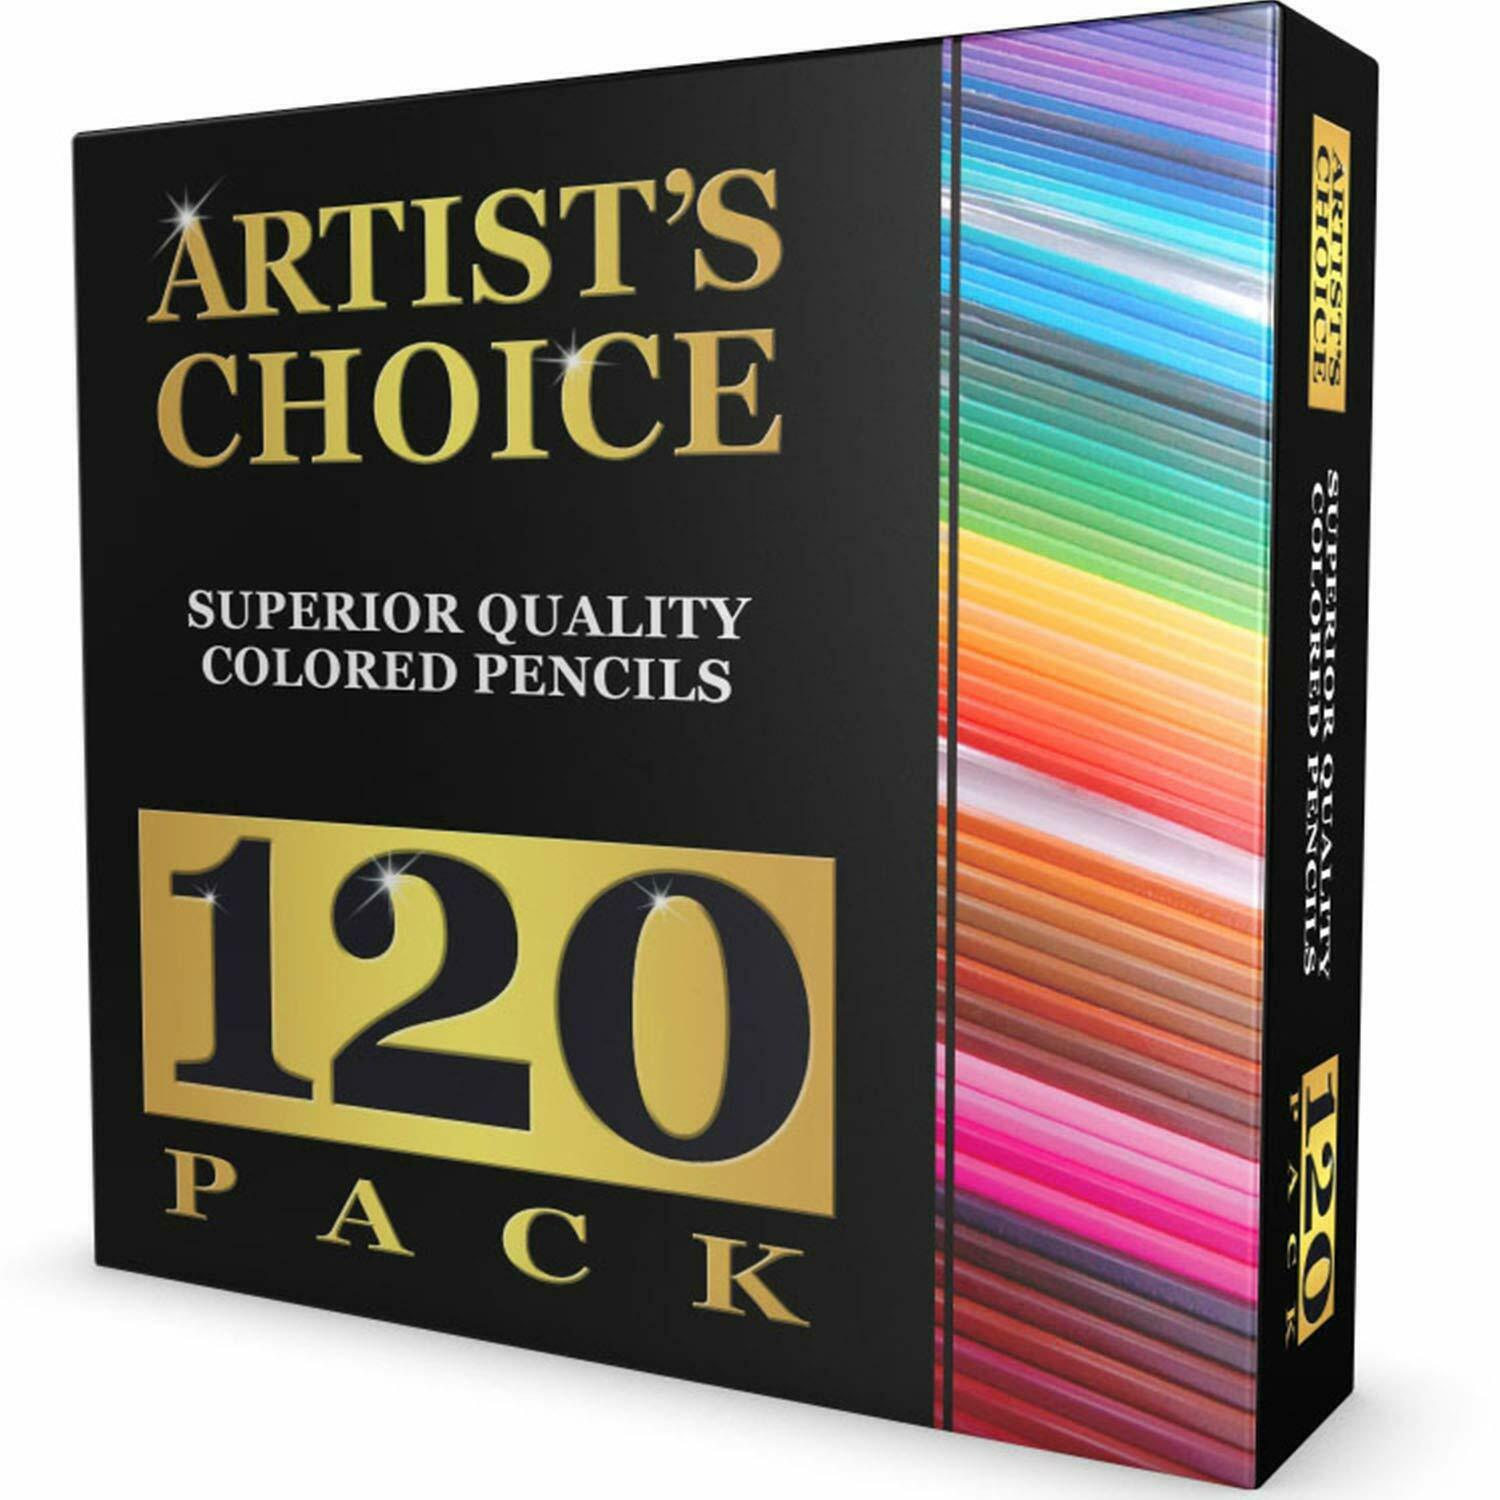 120 Colored Pencils GIANT SET Unique Colors Premium Kids & P